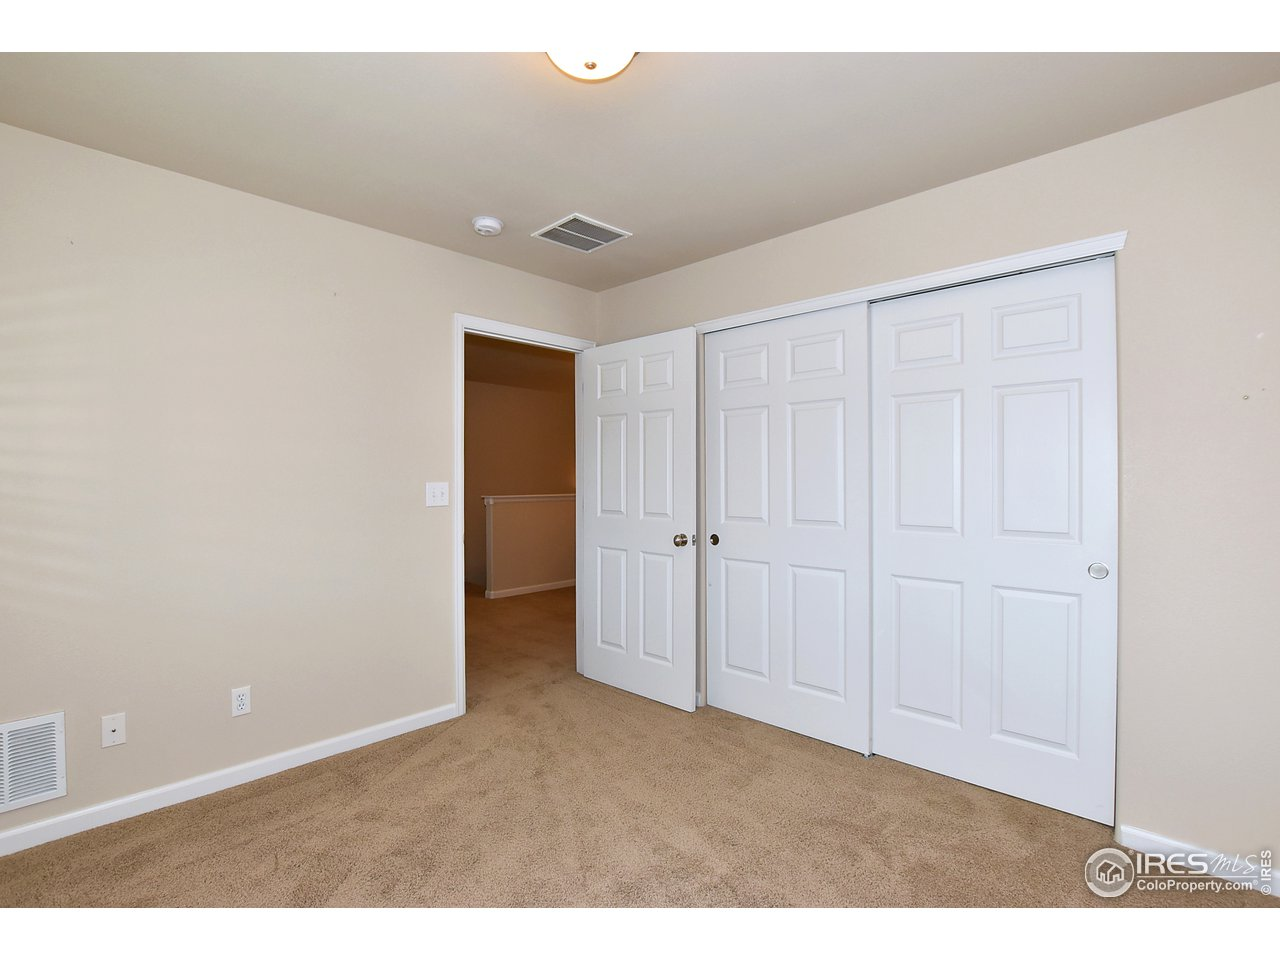 Large closet in 2nd bedroom